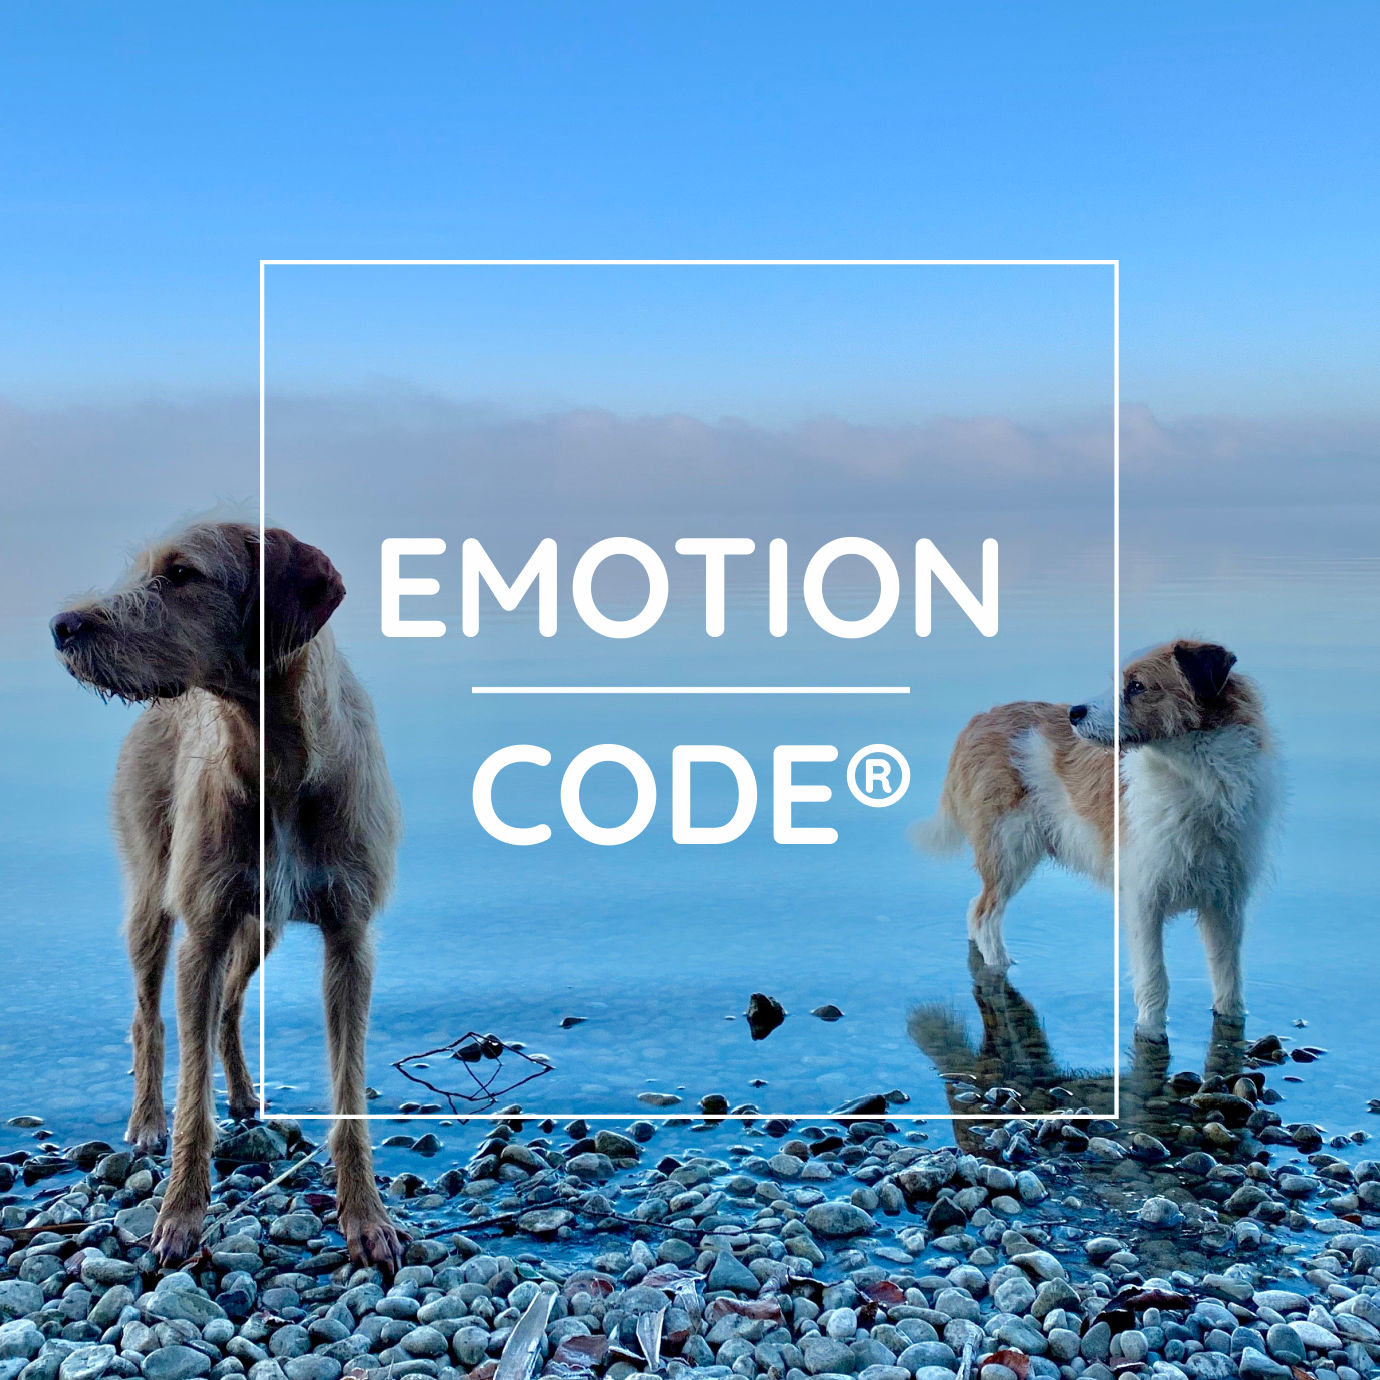 The Emotion Code® PETS